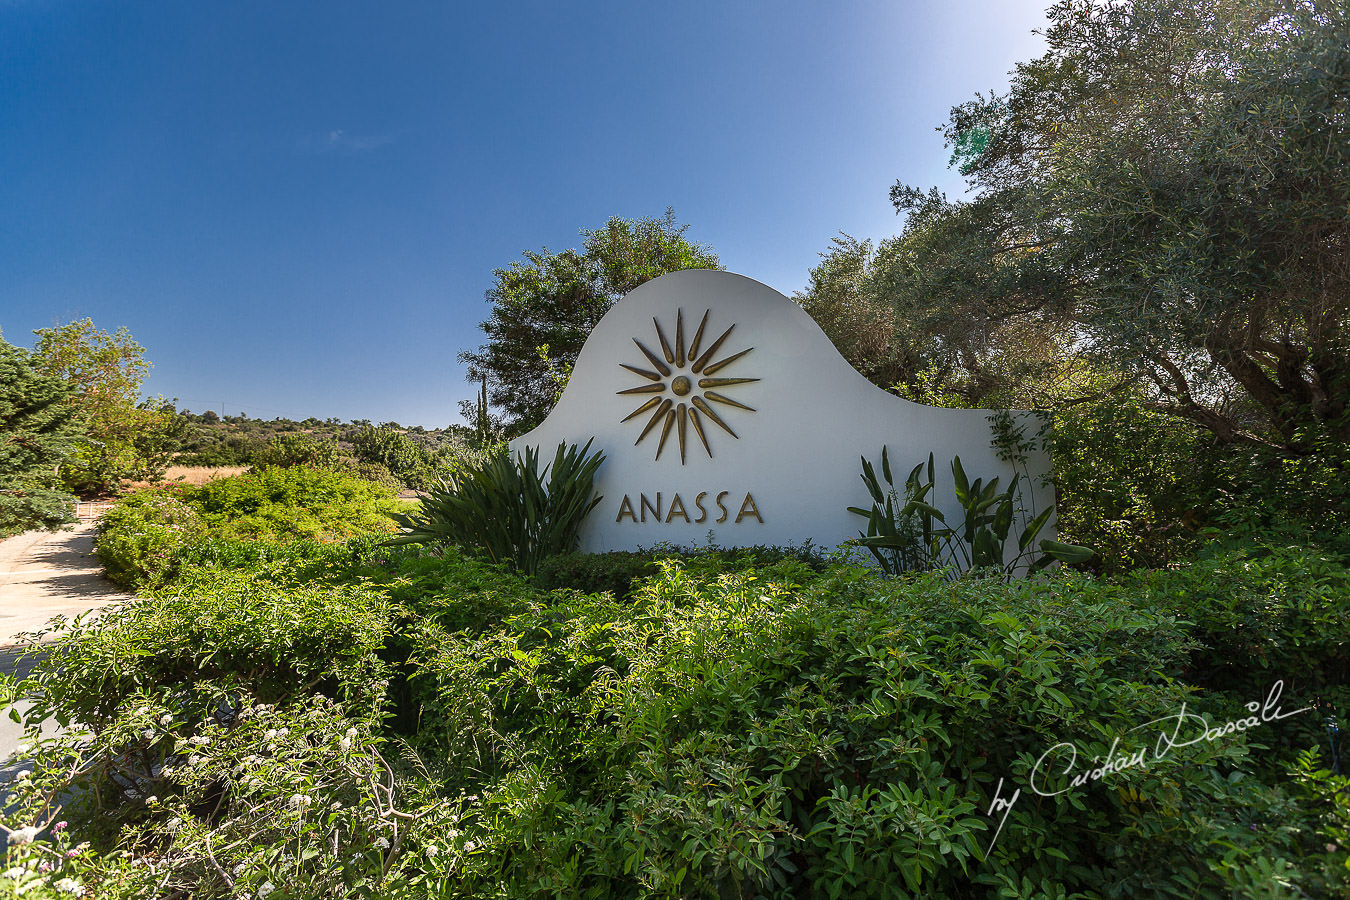 The entrance of the beautiful Anassa Hotel photographed by Cyprus Photographer Cristian Dascalu.